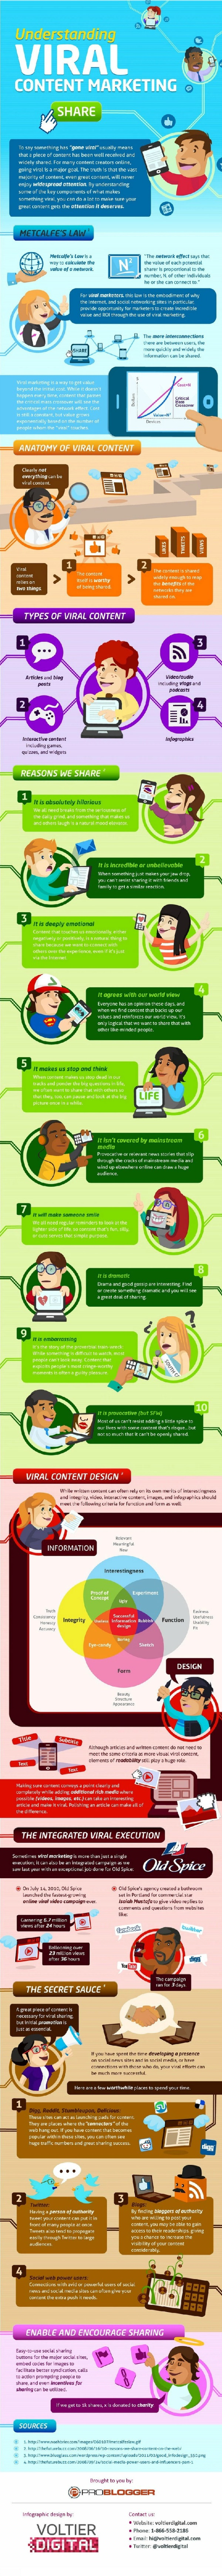 viral-content-marketing-infographic